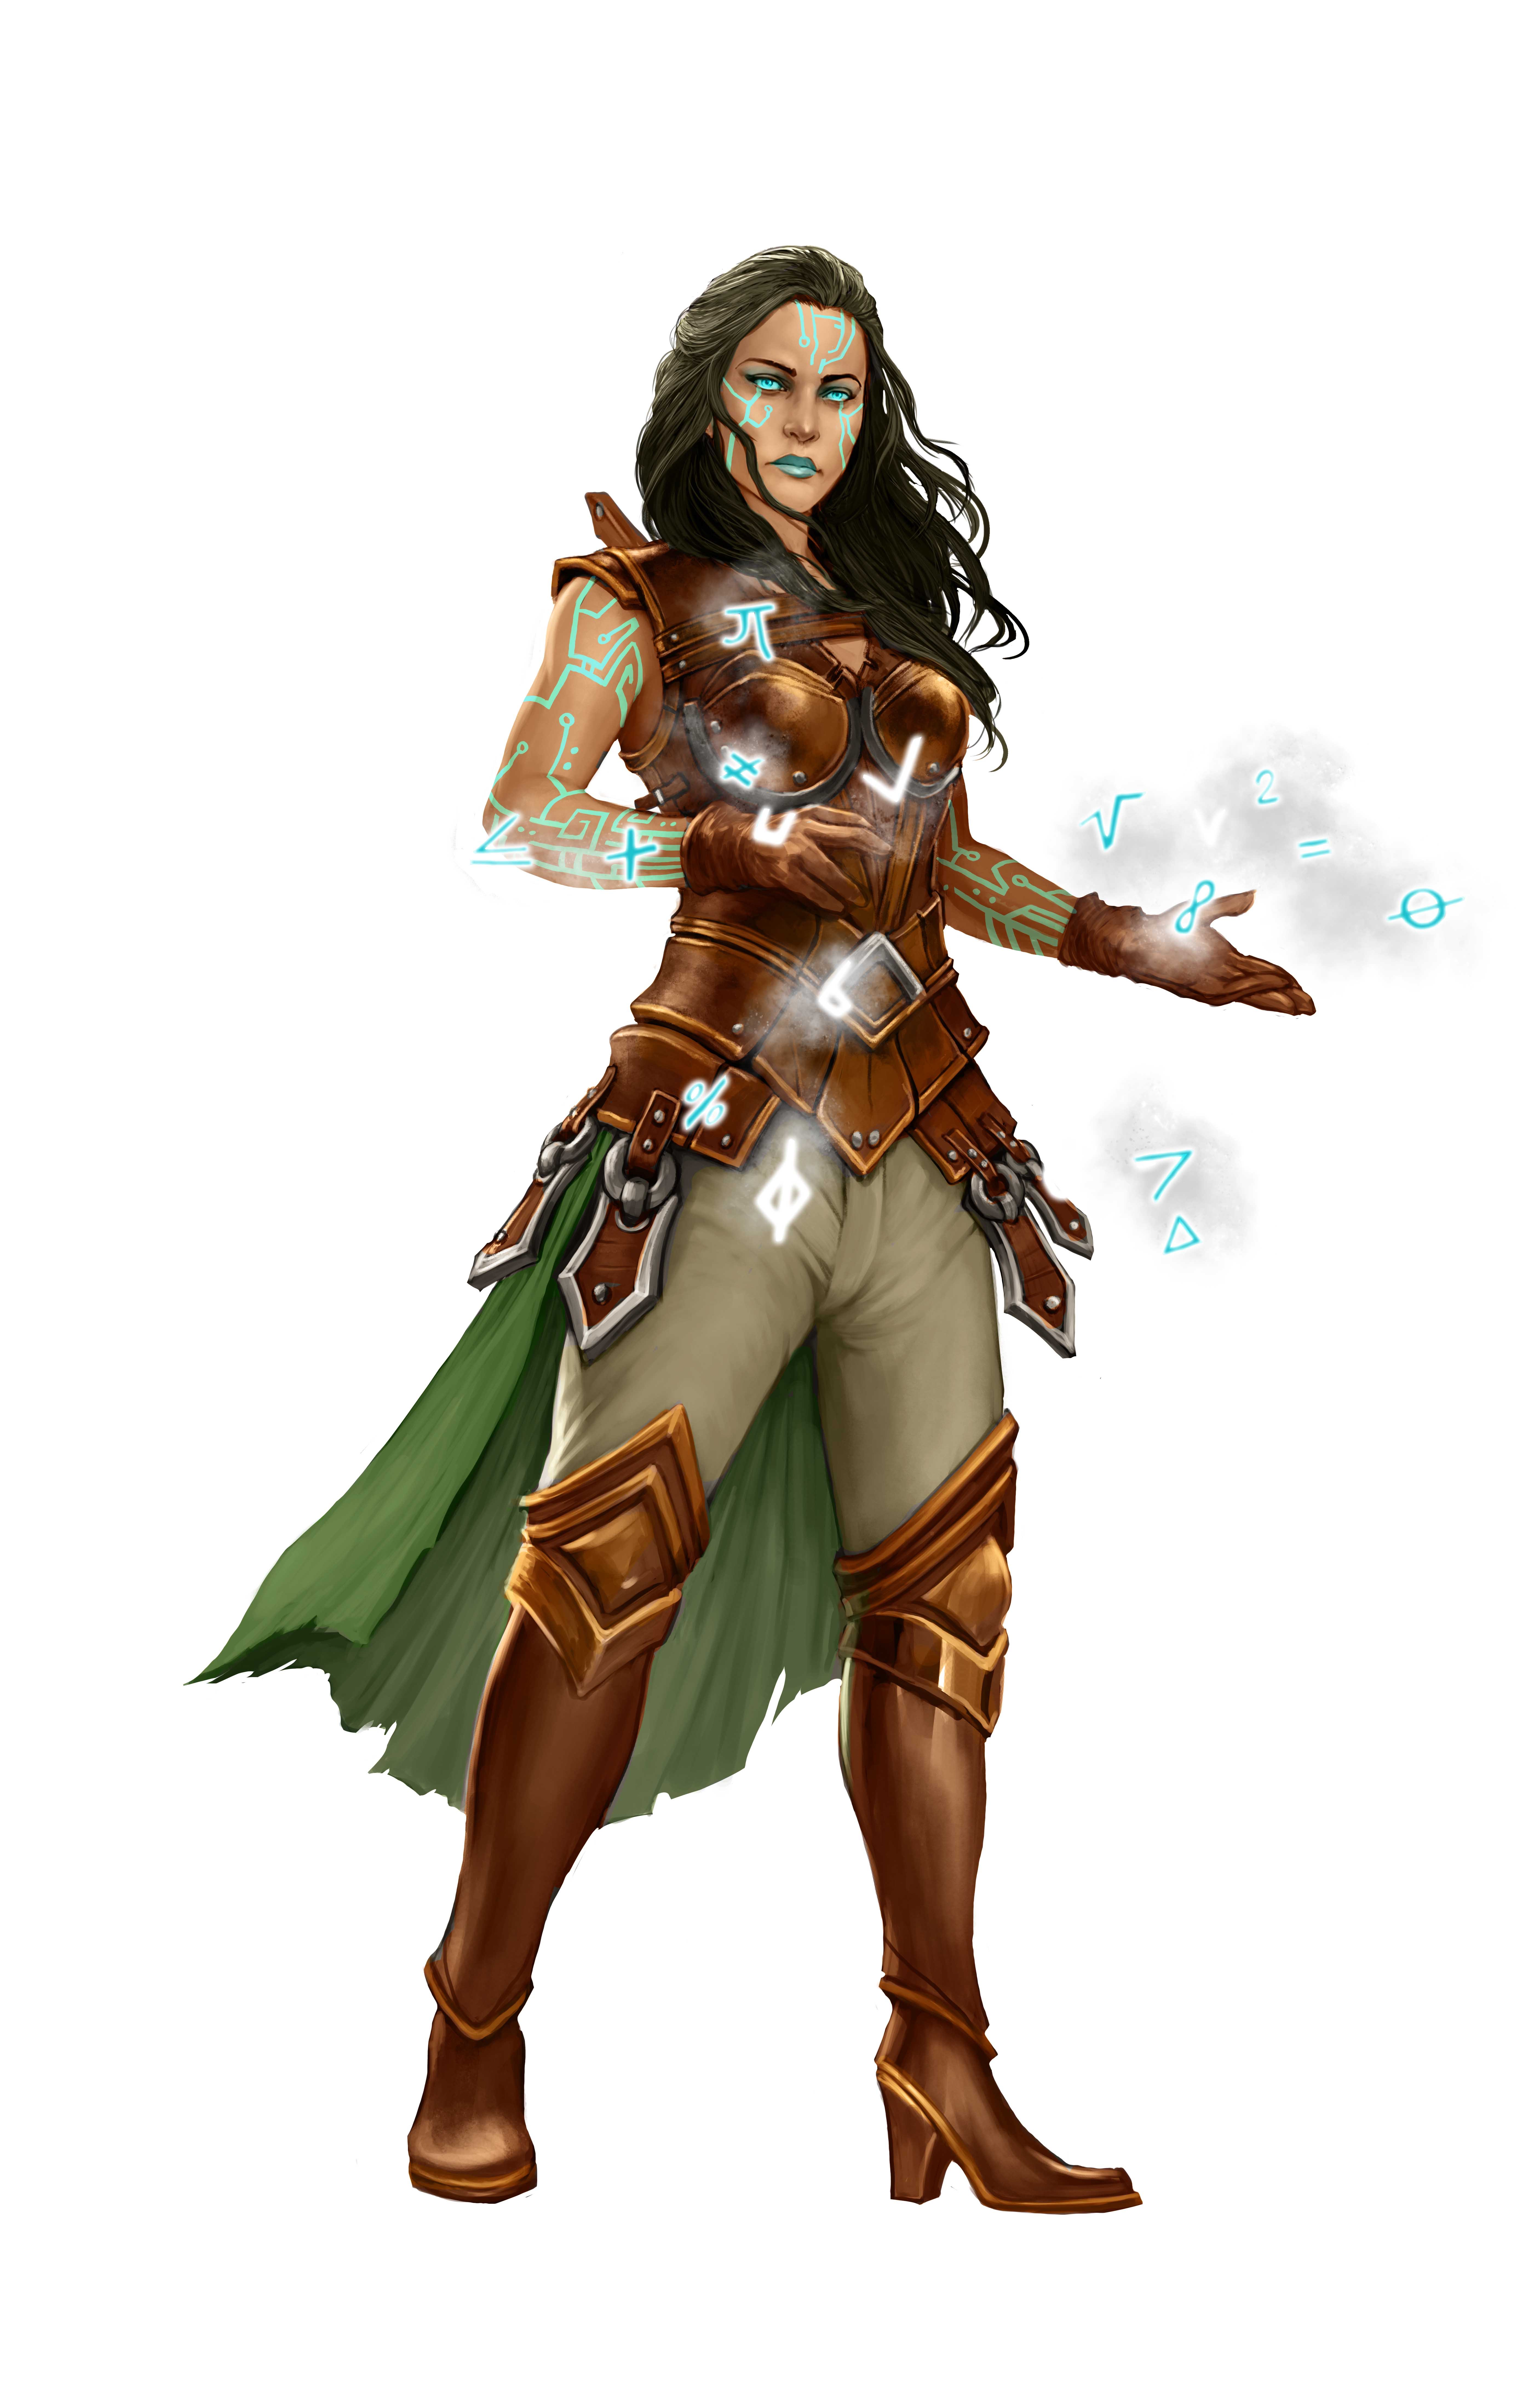 Casandalee, goddess of artificial life and free thinking, producing runes and mathematical symbols.